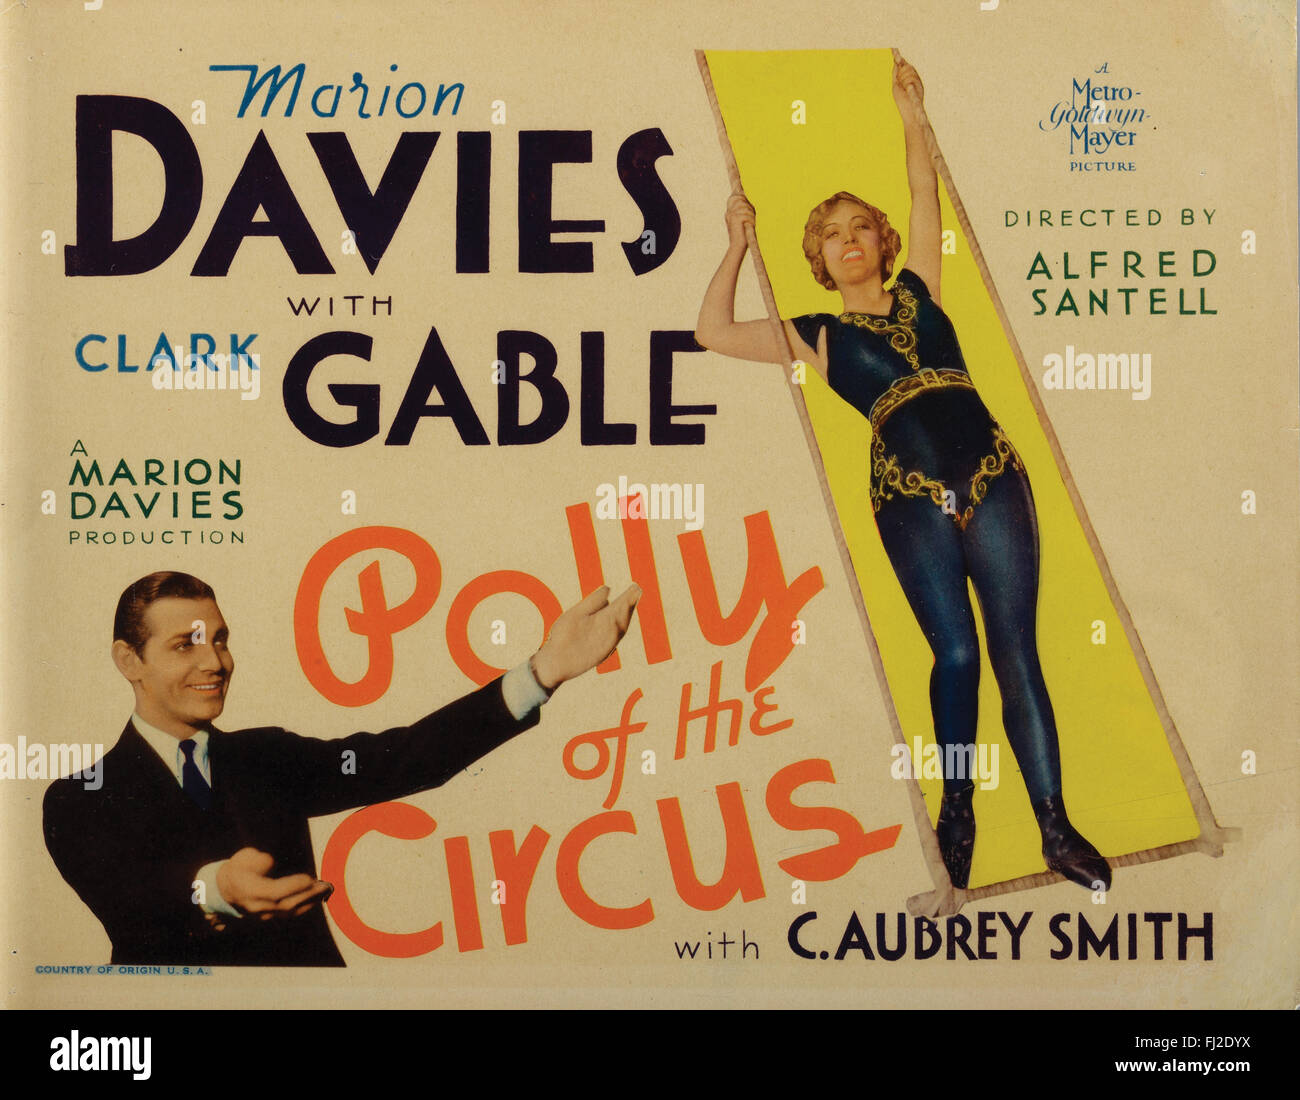 Congressional Circus >> Movie 1932 Stock Photos & Movie 1932 Stock Images - Alamy